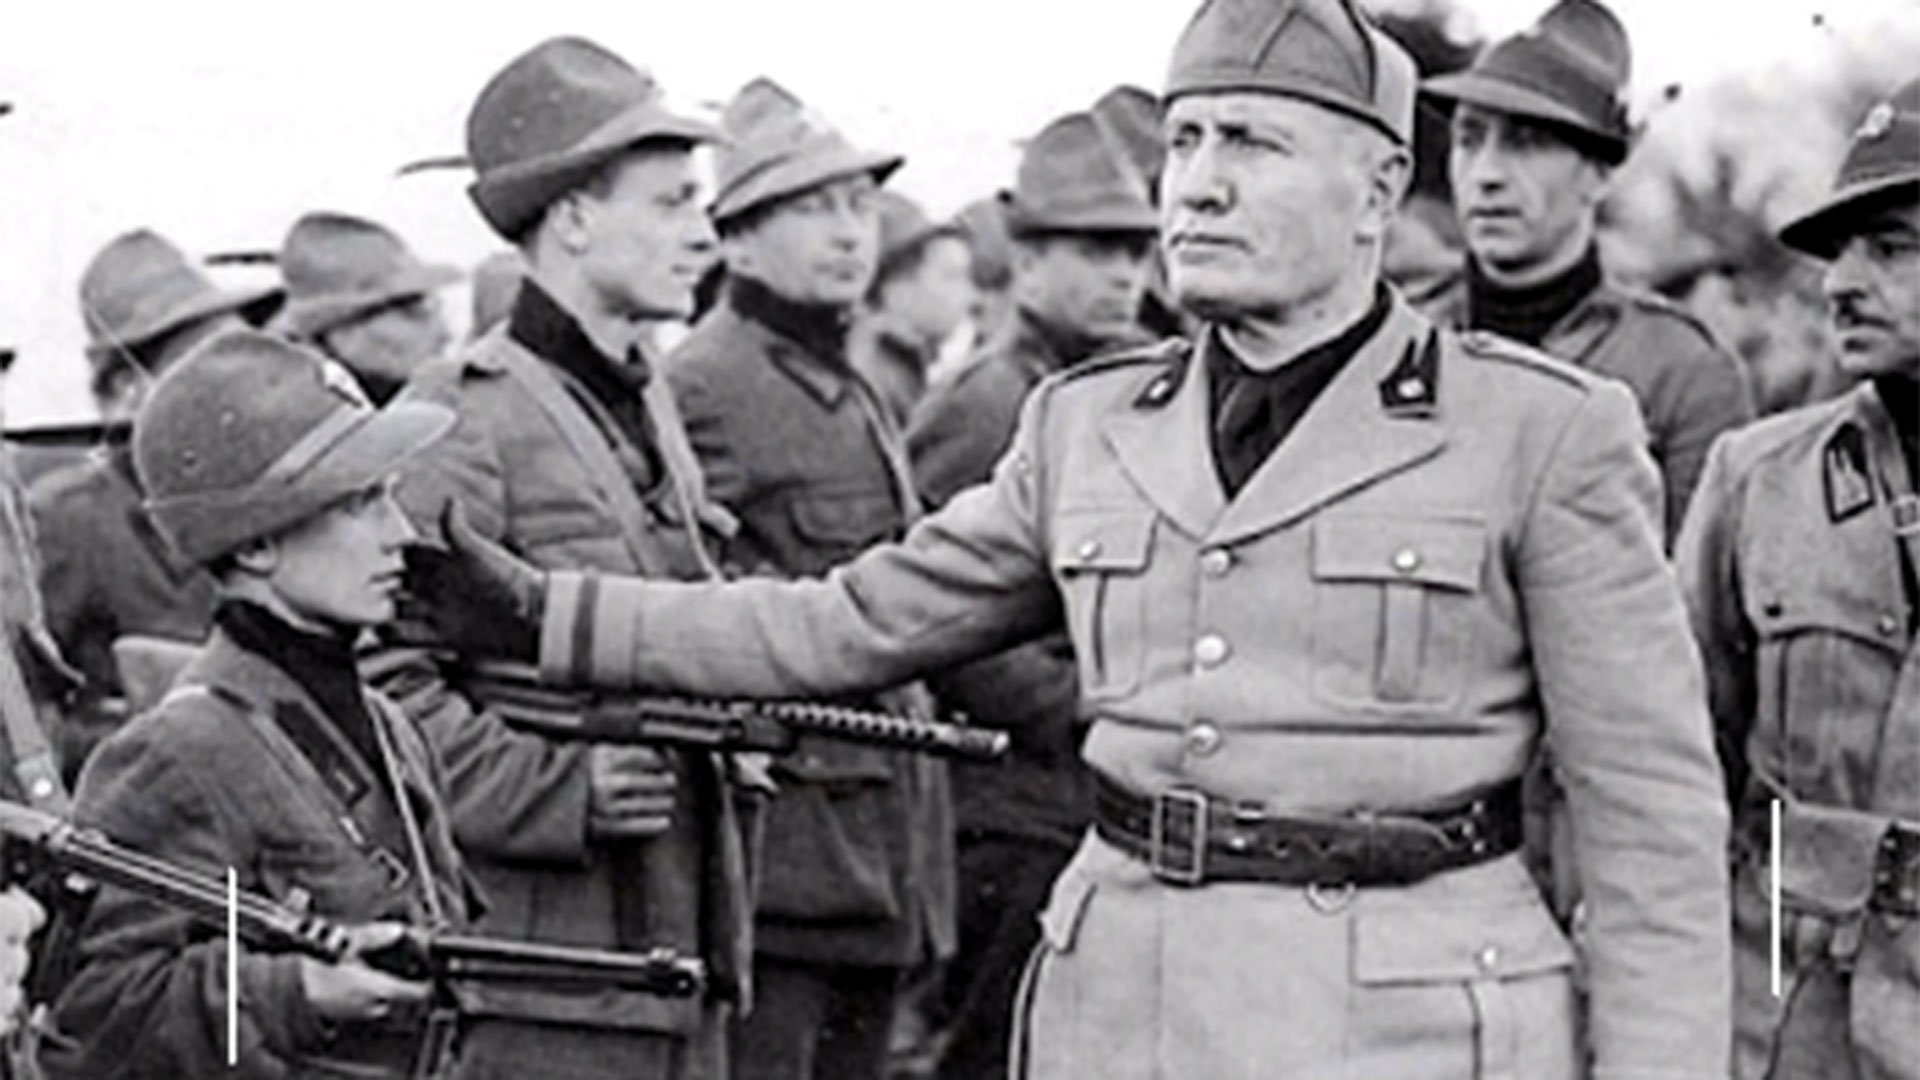 Mussolini and his regime have had a major impact on the fate of Europe.